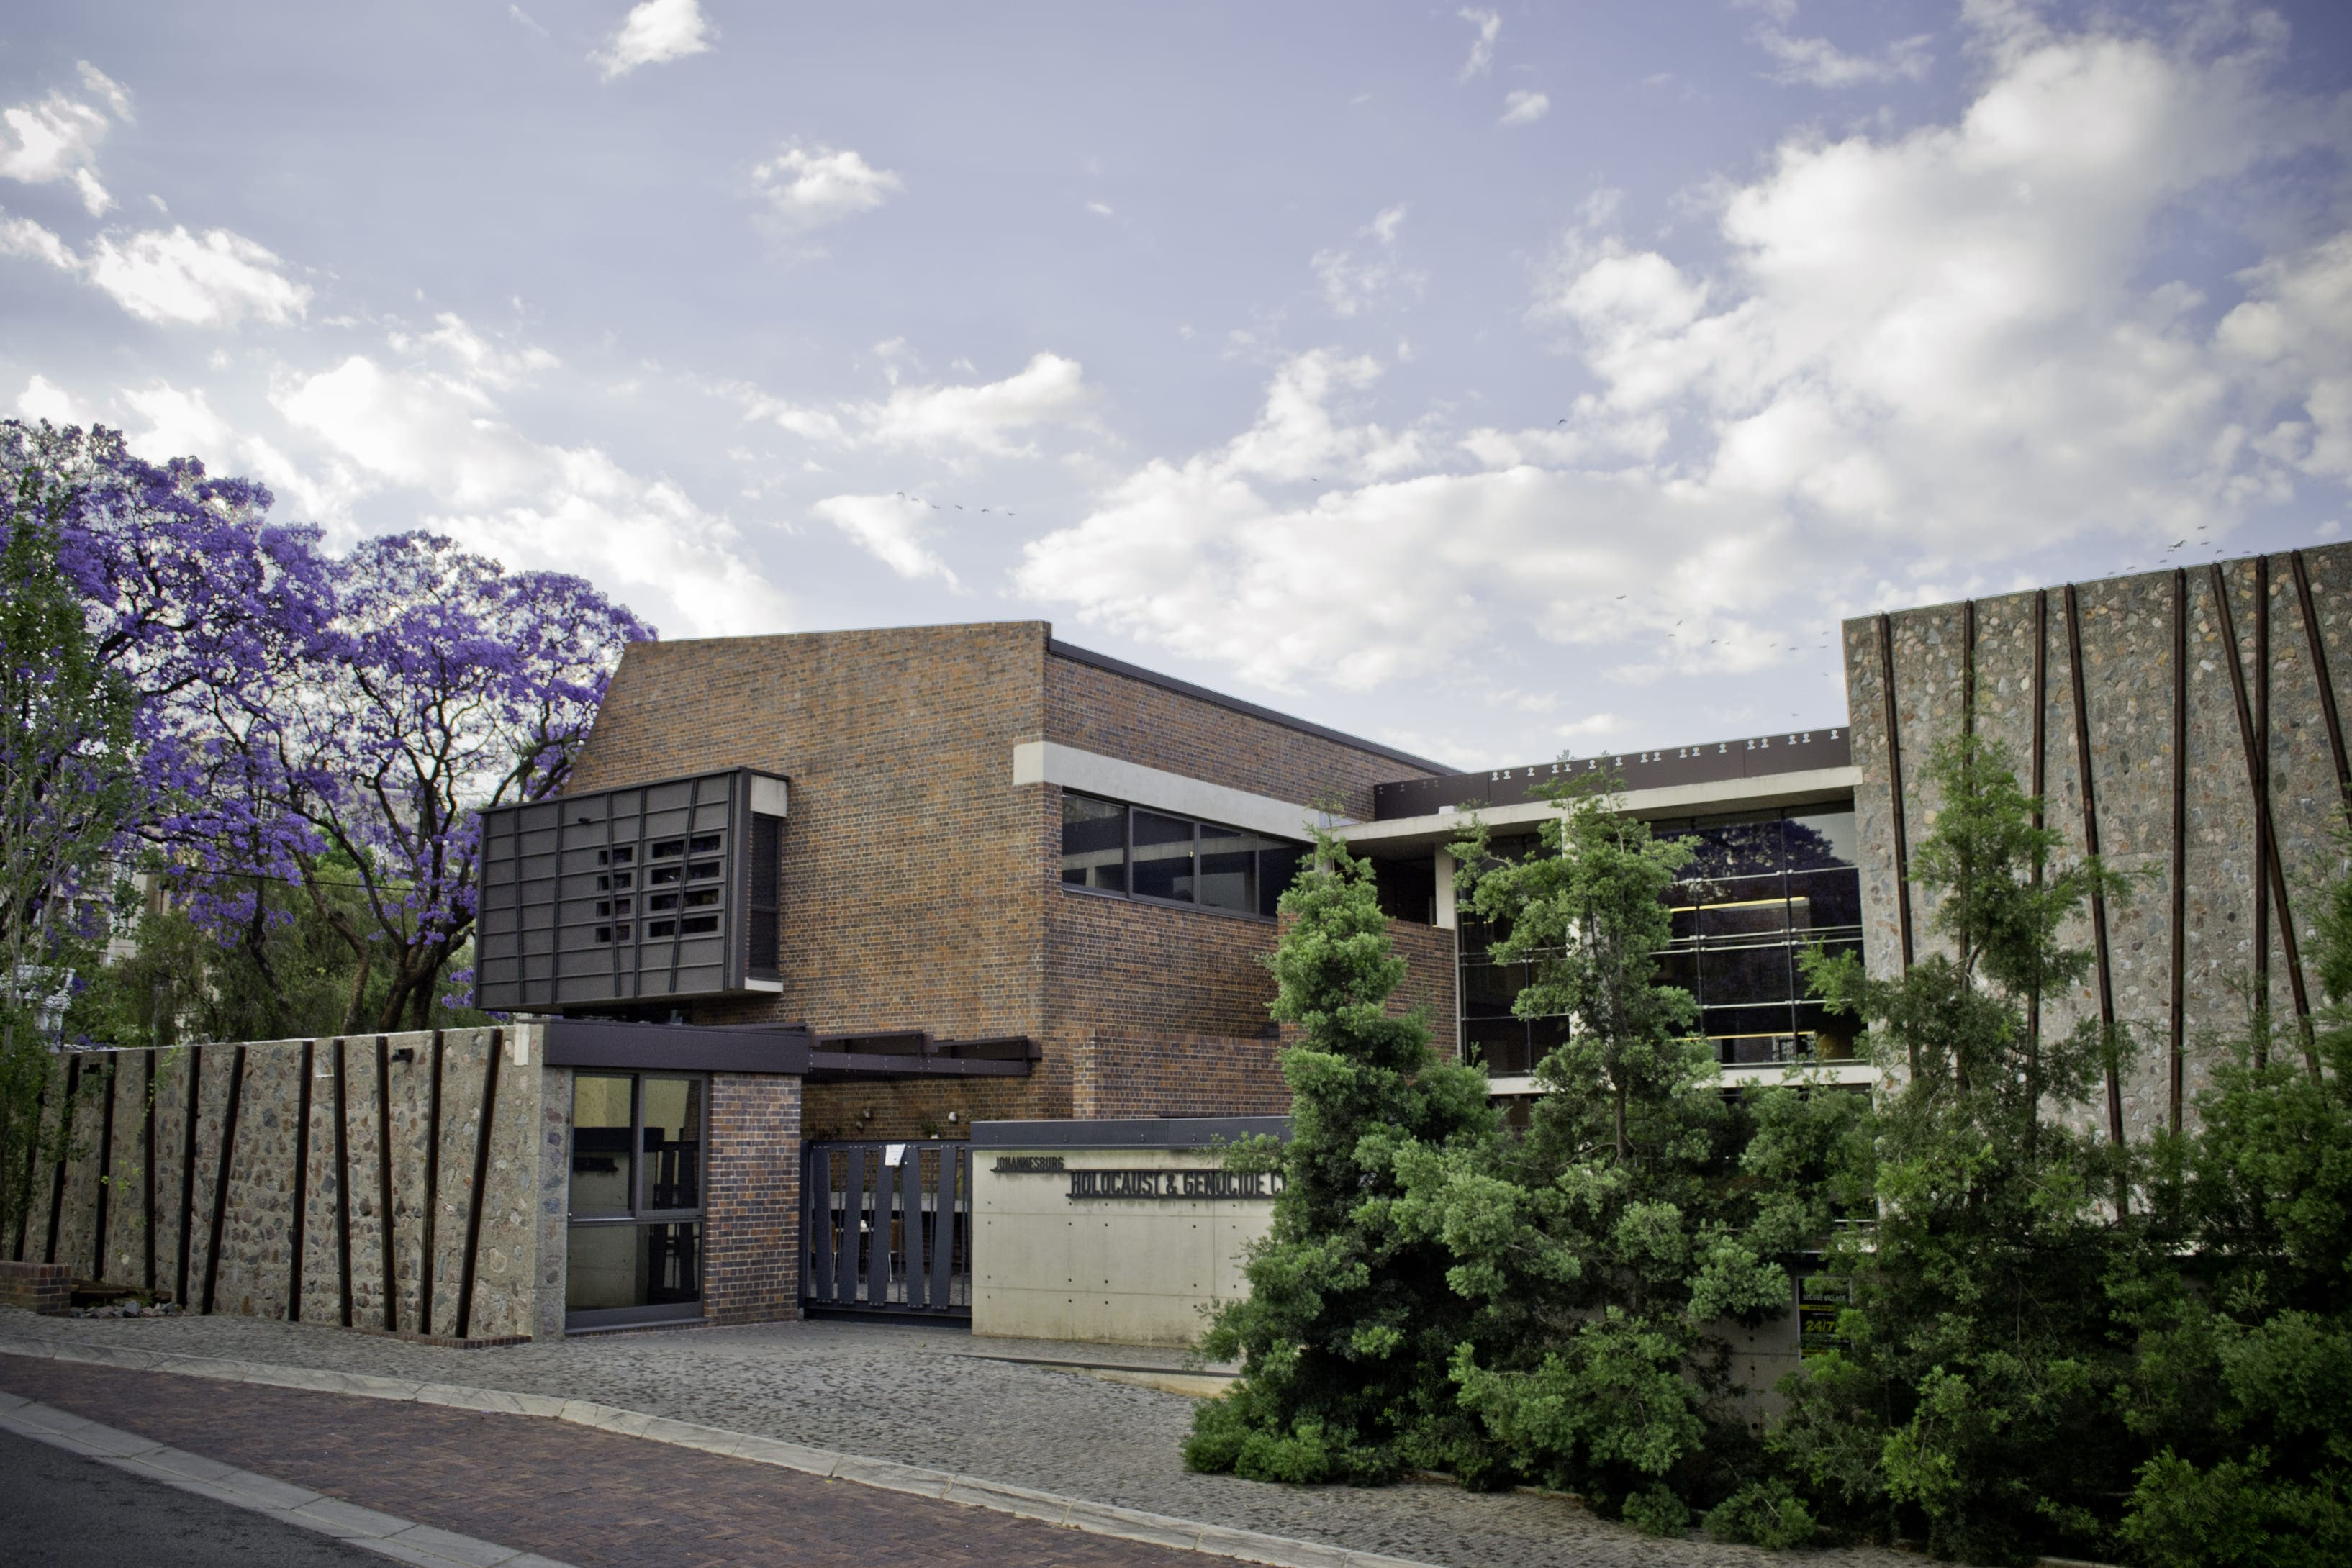 The Johannesburg Holocaust and Genocide Centre